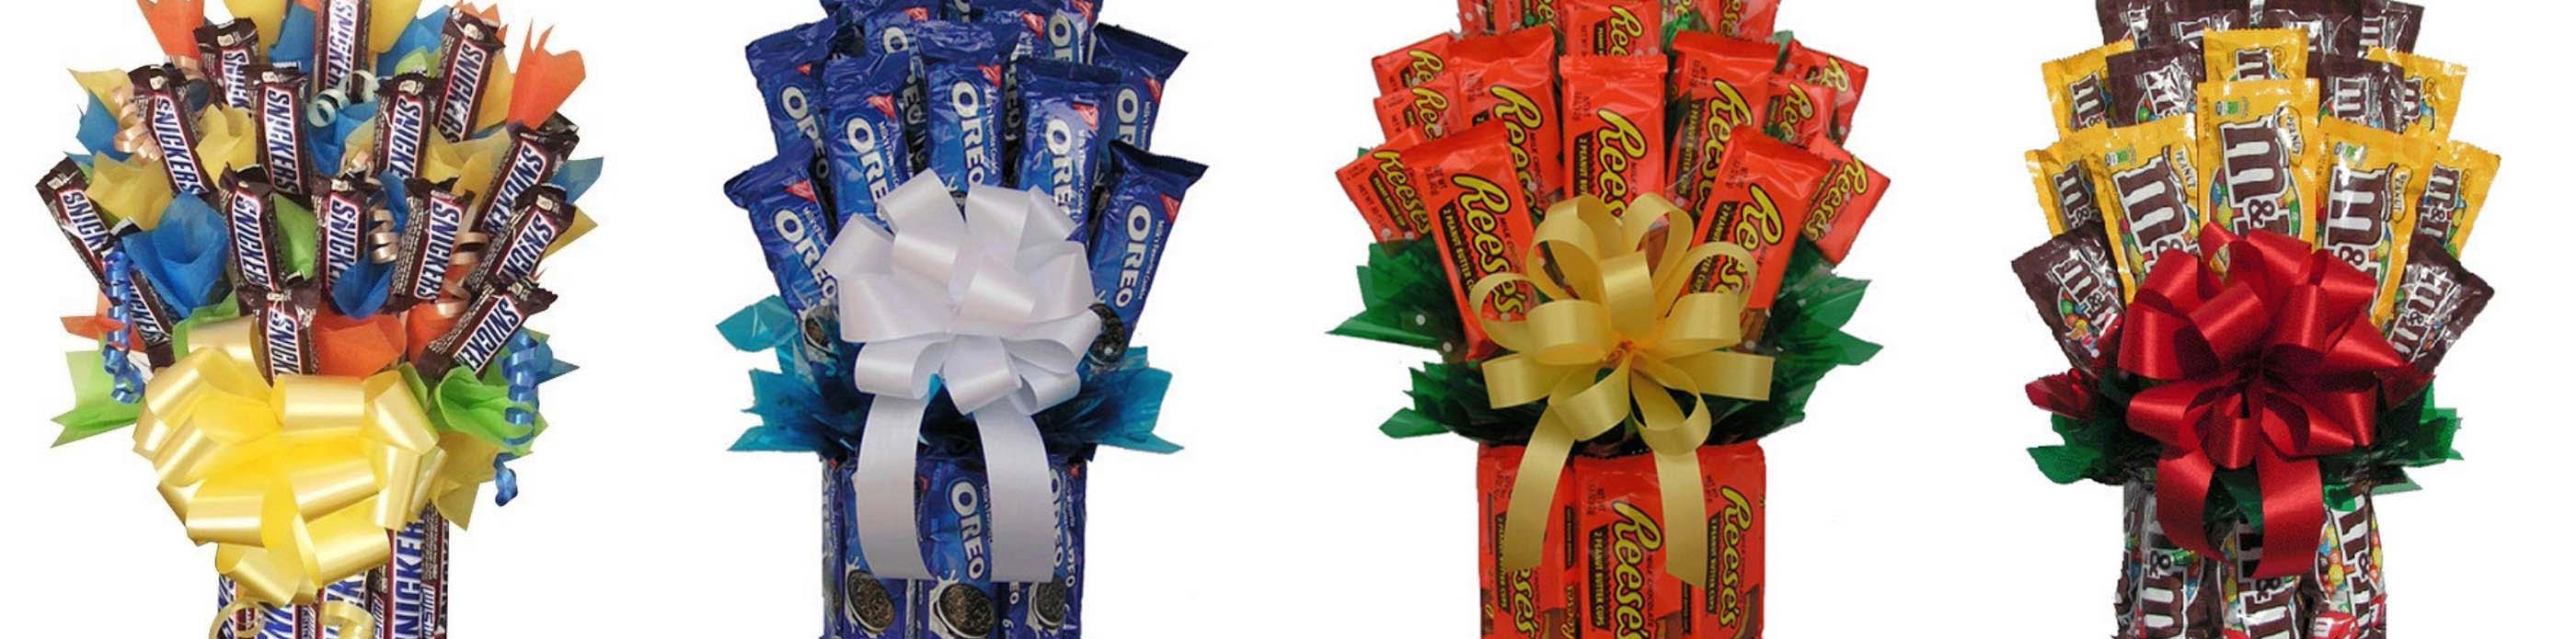 candy-bouquets-banner.jpg